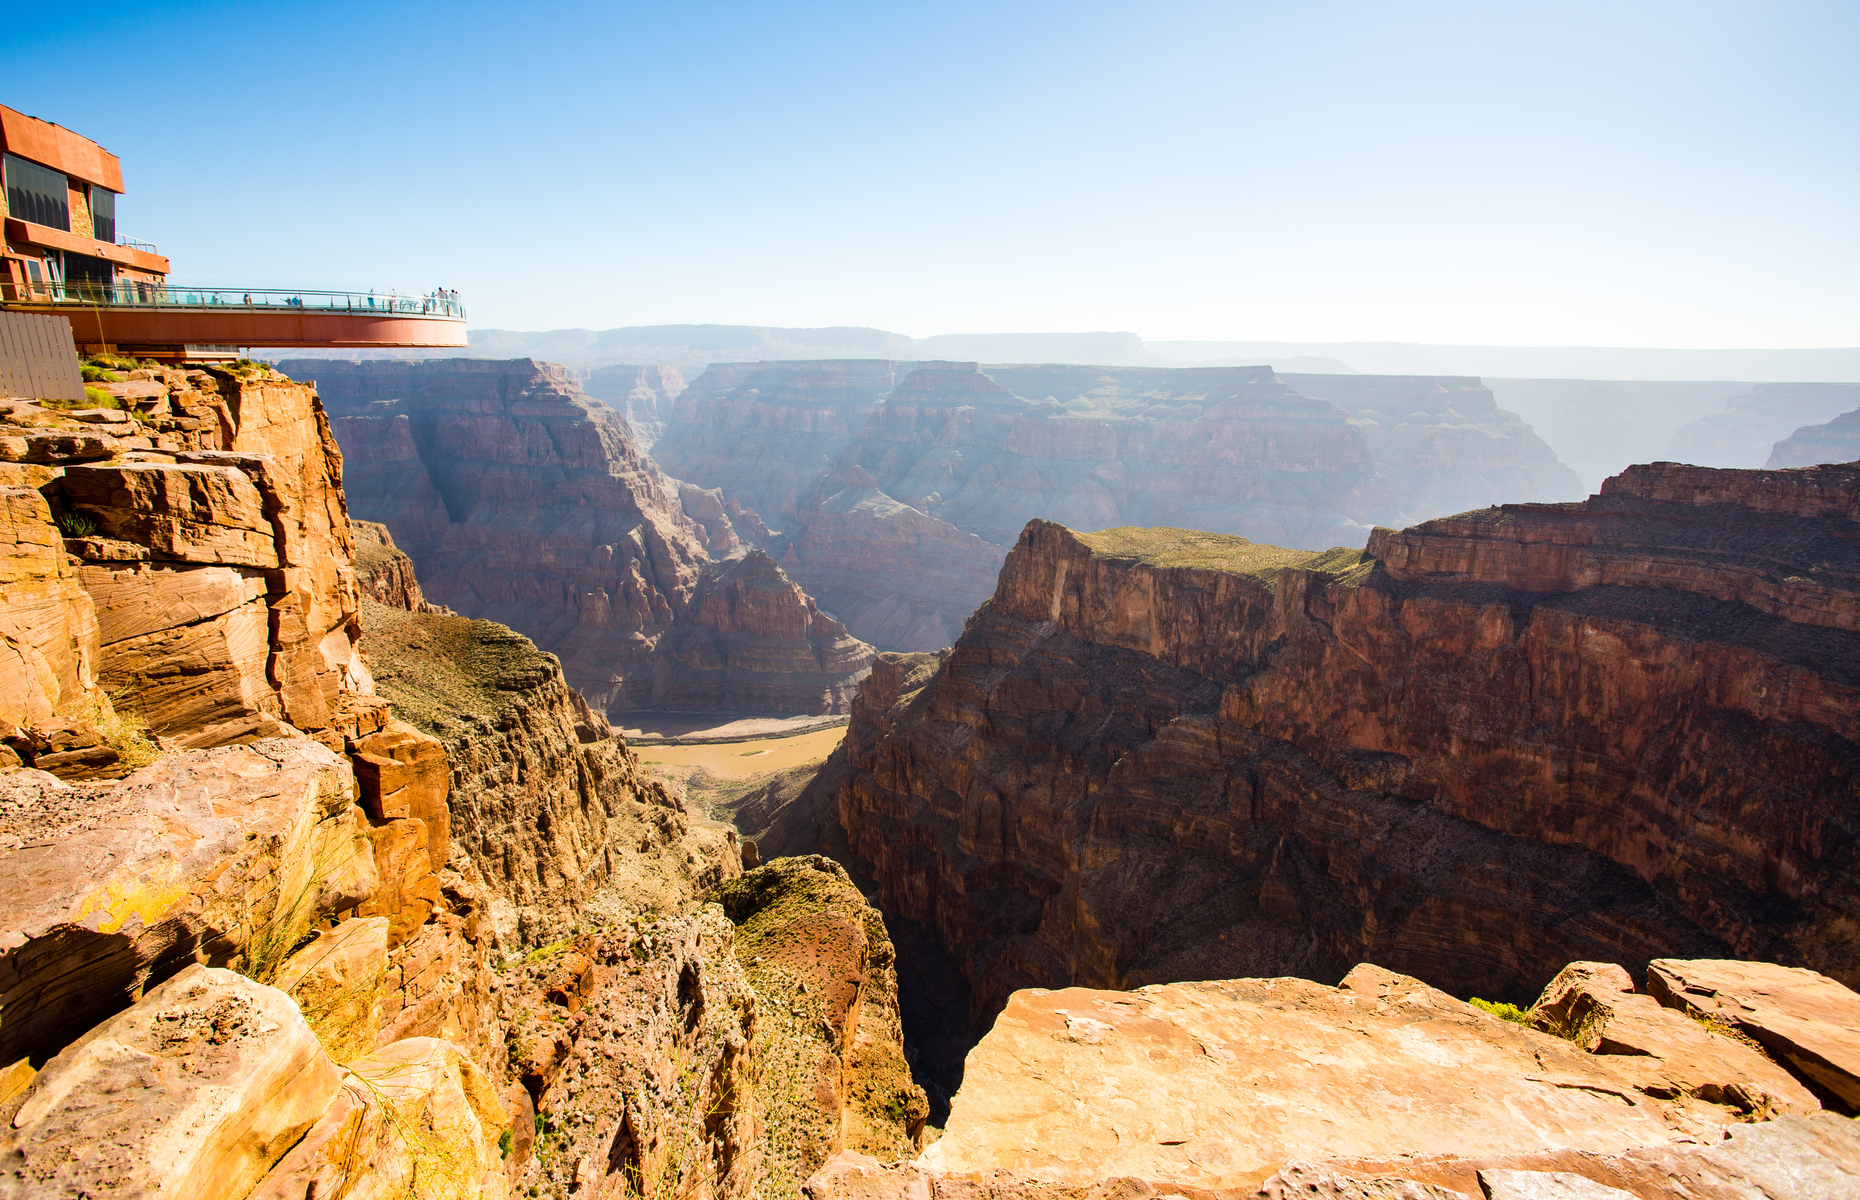 Slide 5 of 16: Ninety tonnes of glass were imported from Germany to build the Grand Canyon Skywalk. The first person to set foot on the platform was the famed astronaut Buzz Aldrin. Today, visitors can walk its length while admiring the views both around them and beneath their feet.